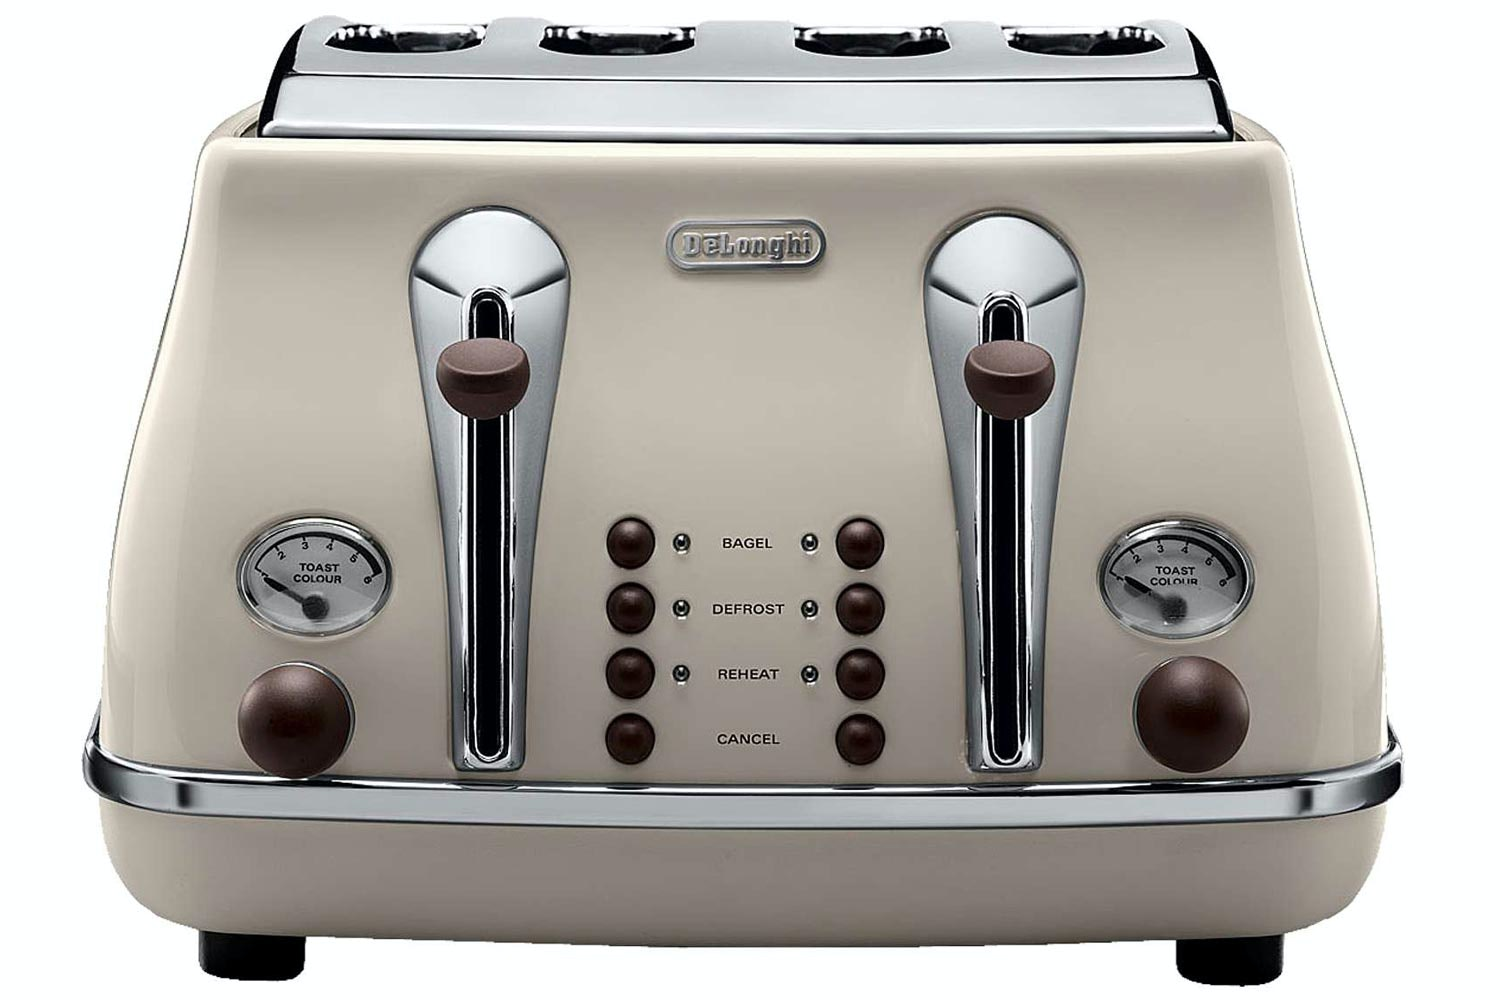 DeLonghi 4 Slice Vintage Toaster | Cream